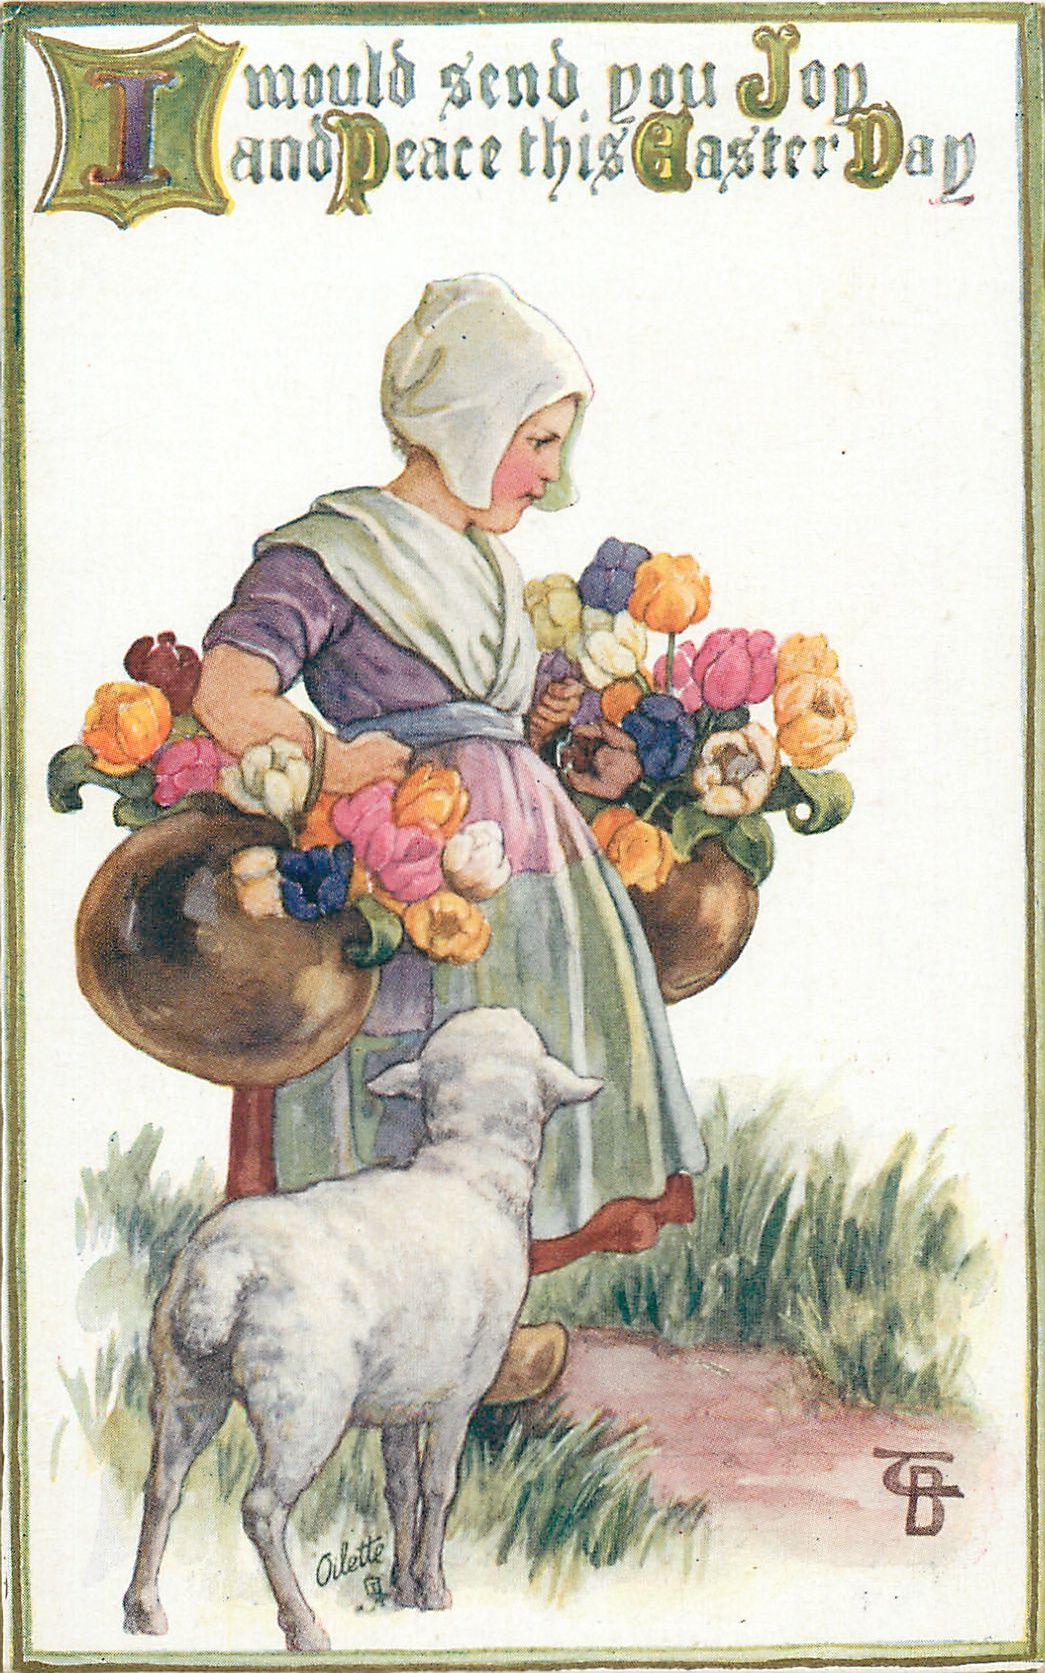 I WOULD SEND YOU JOY AND PEACE THIS EASTER DAY  girl carrying pots of tulips, lamb stands - Art by C.M. Burd